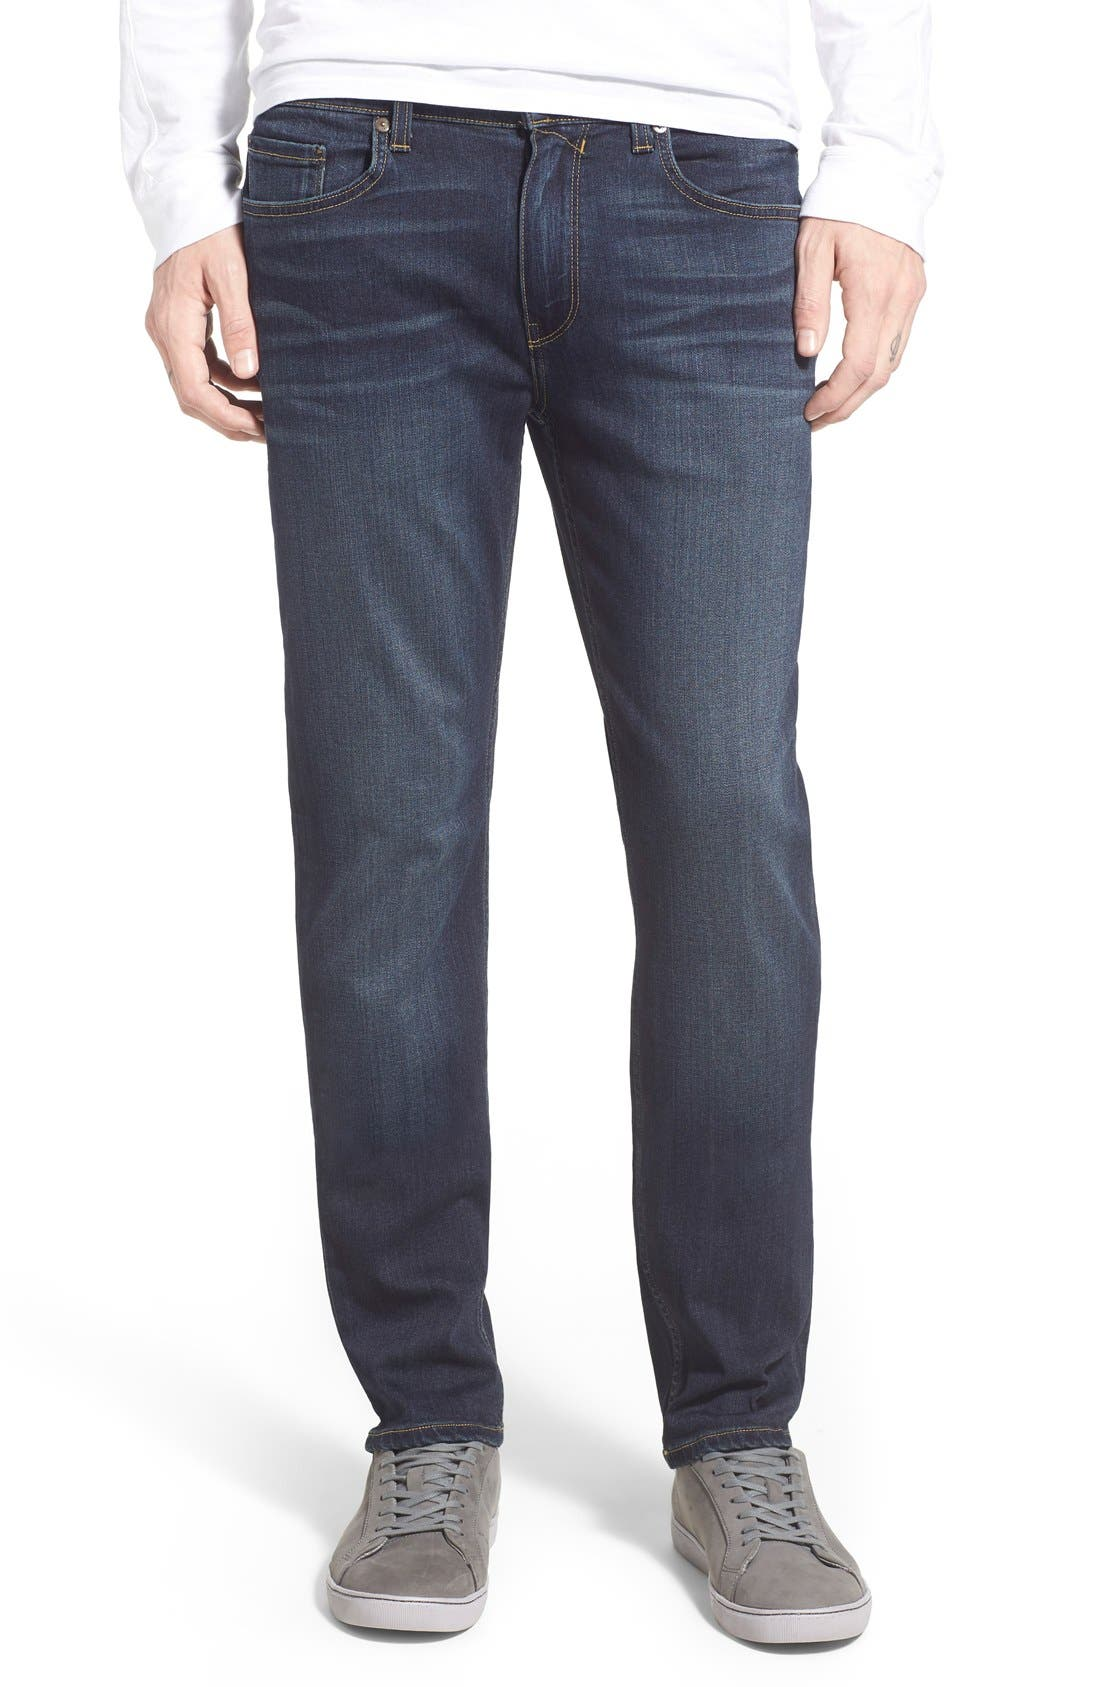 Lennox Slim Fit Jeans,                             Main thumbnail 1, color,                             Rigby